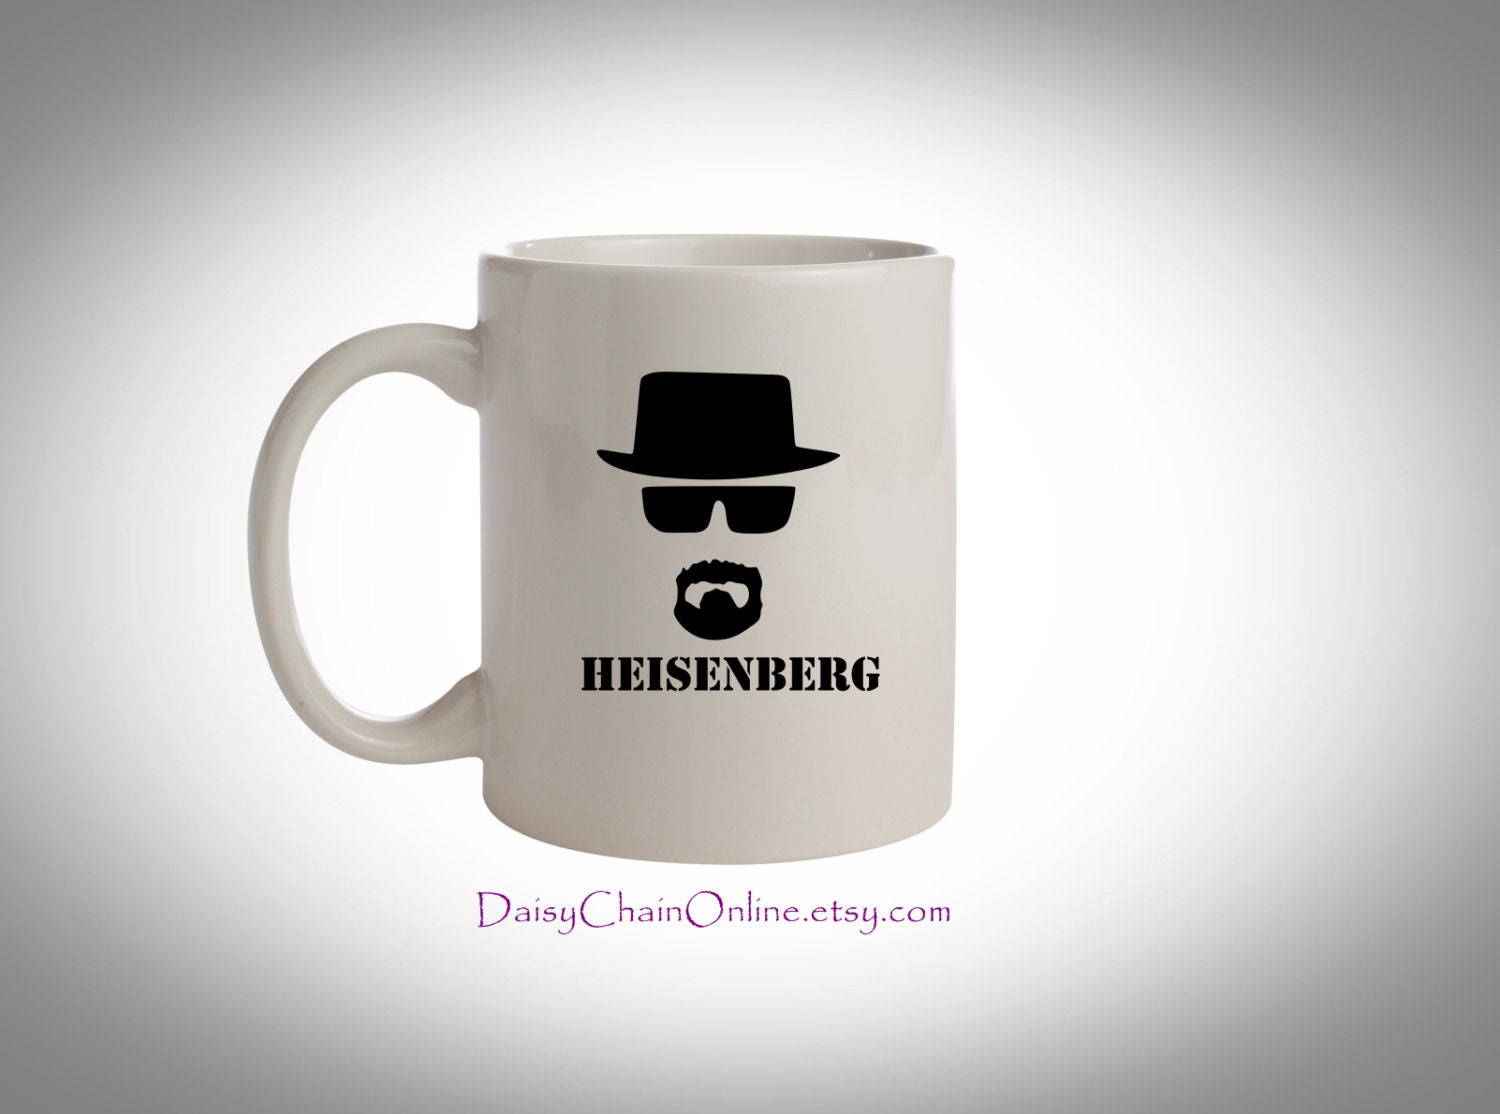 custom coffee Advertise your business first thing in the morning with custom ceramic mugs your personalized mugs with logo will arrive at lightning fast speed and the guaranteed.